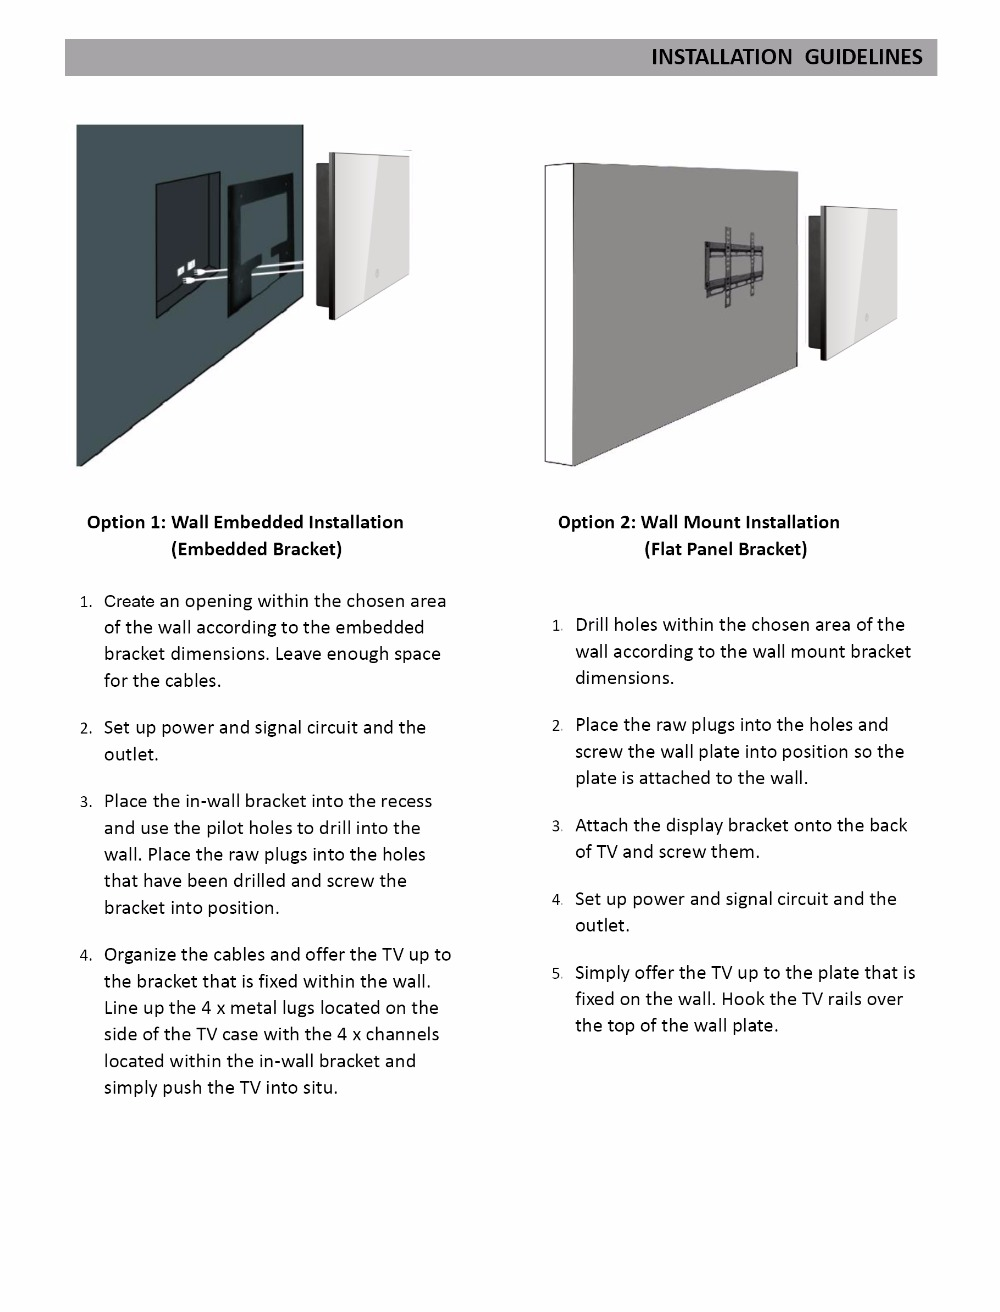 Wall Mounted Installation Instructions